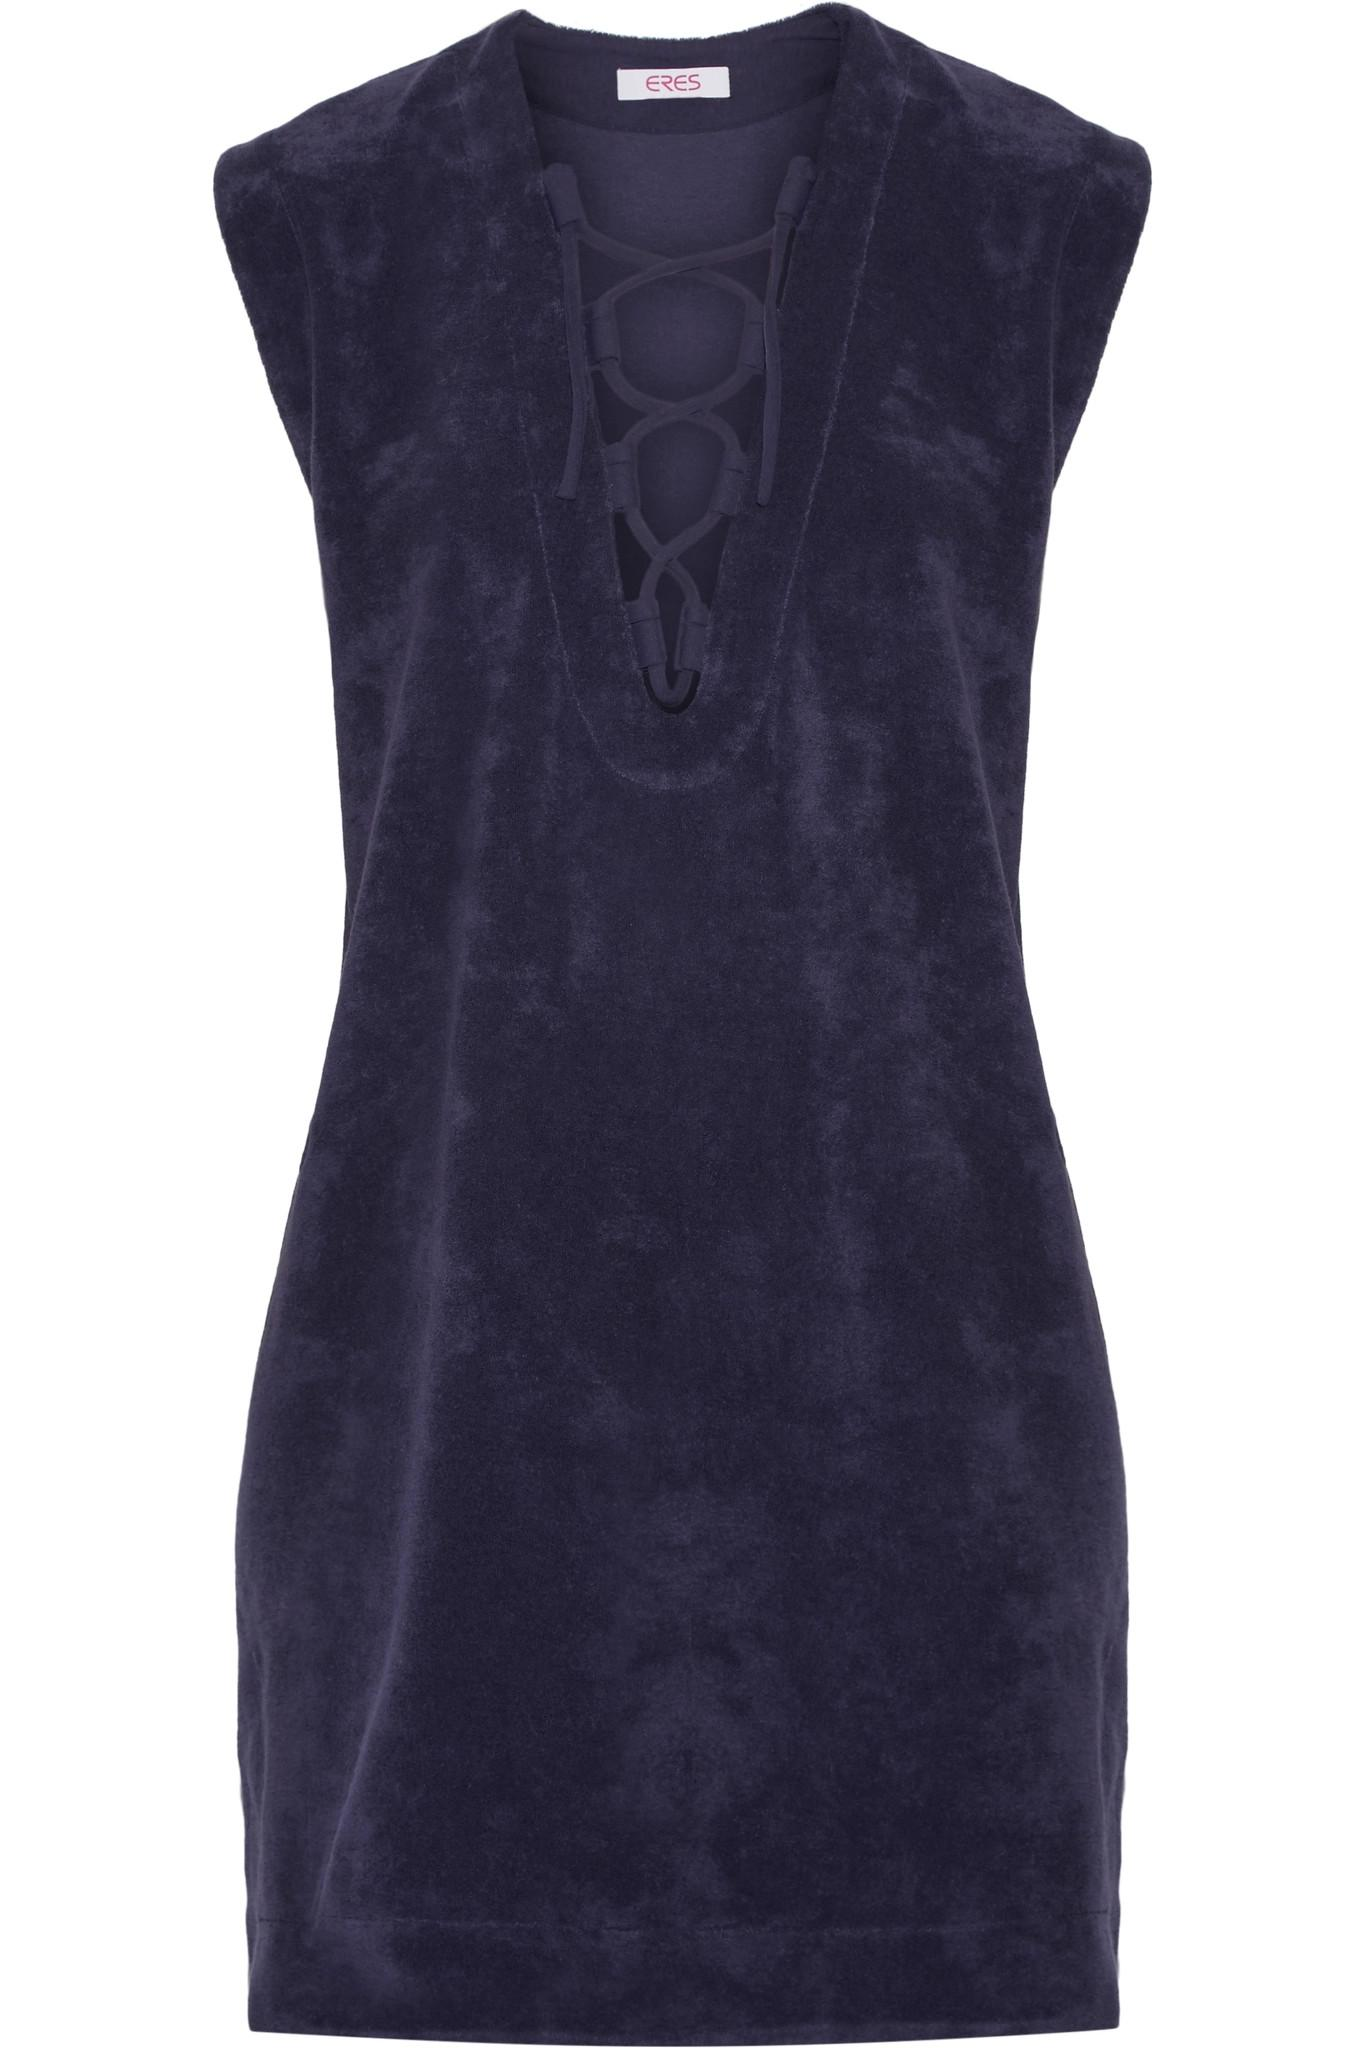 Alison Lace-up Cotton-terry Dress - Dark purple Eres Ebay Online In China Online WnwHTewA2h